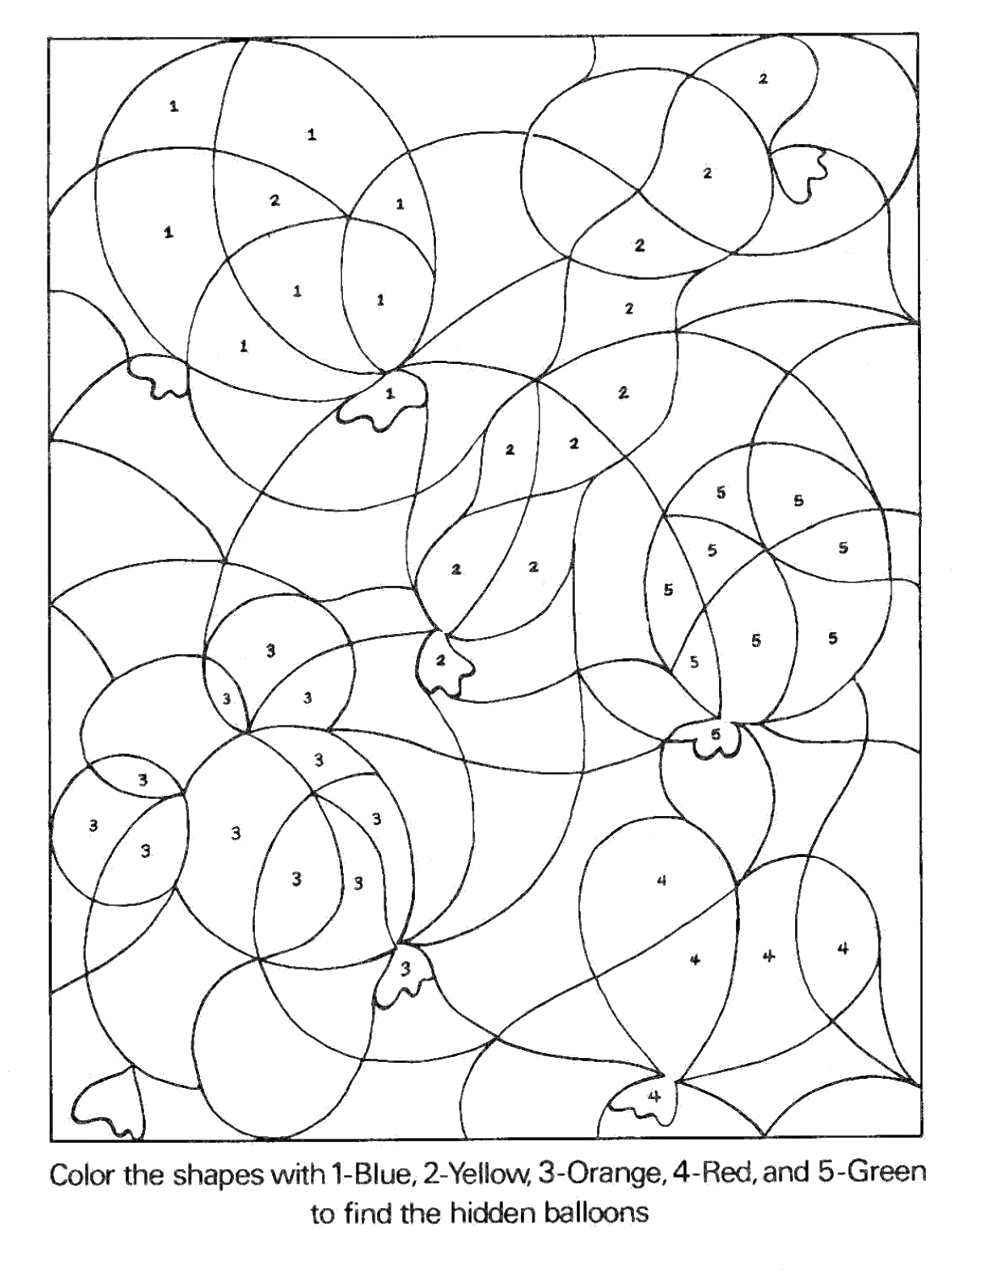 Scavenger hunt coloring pages | 1276x986